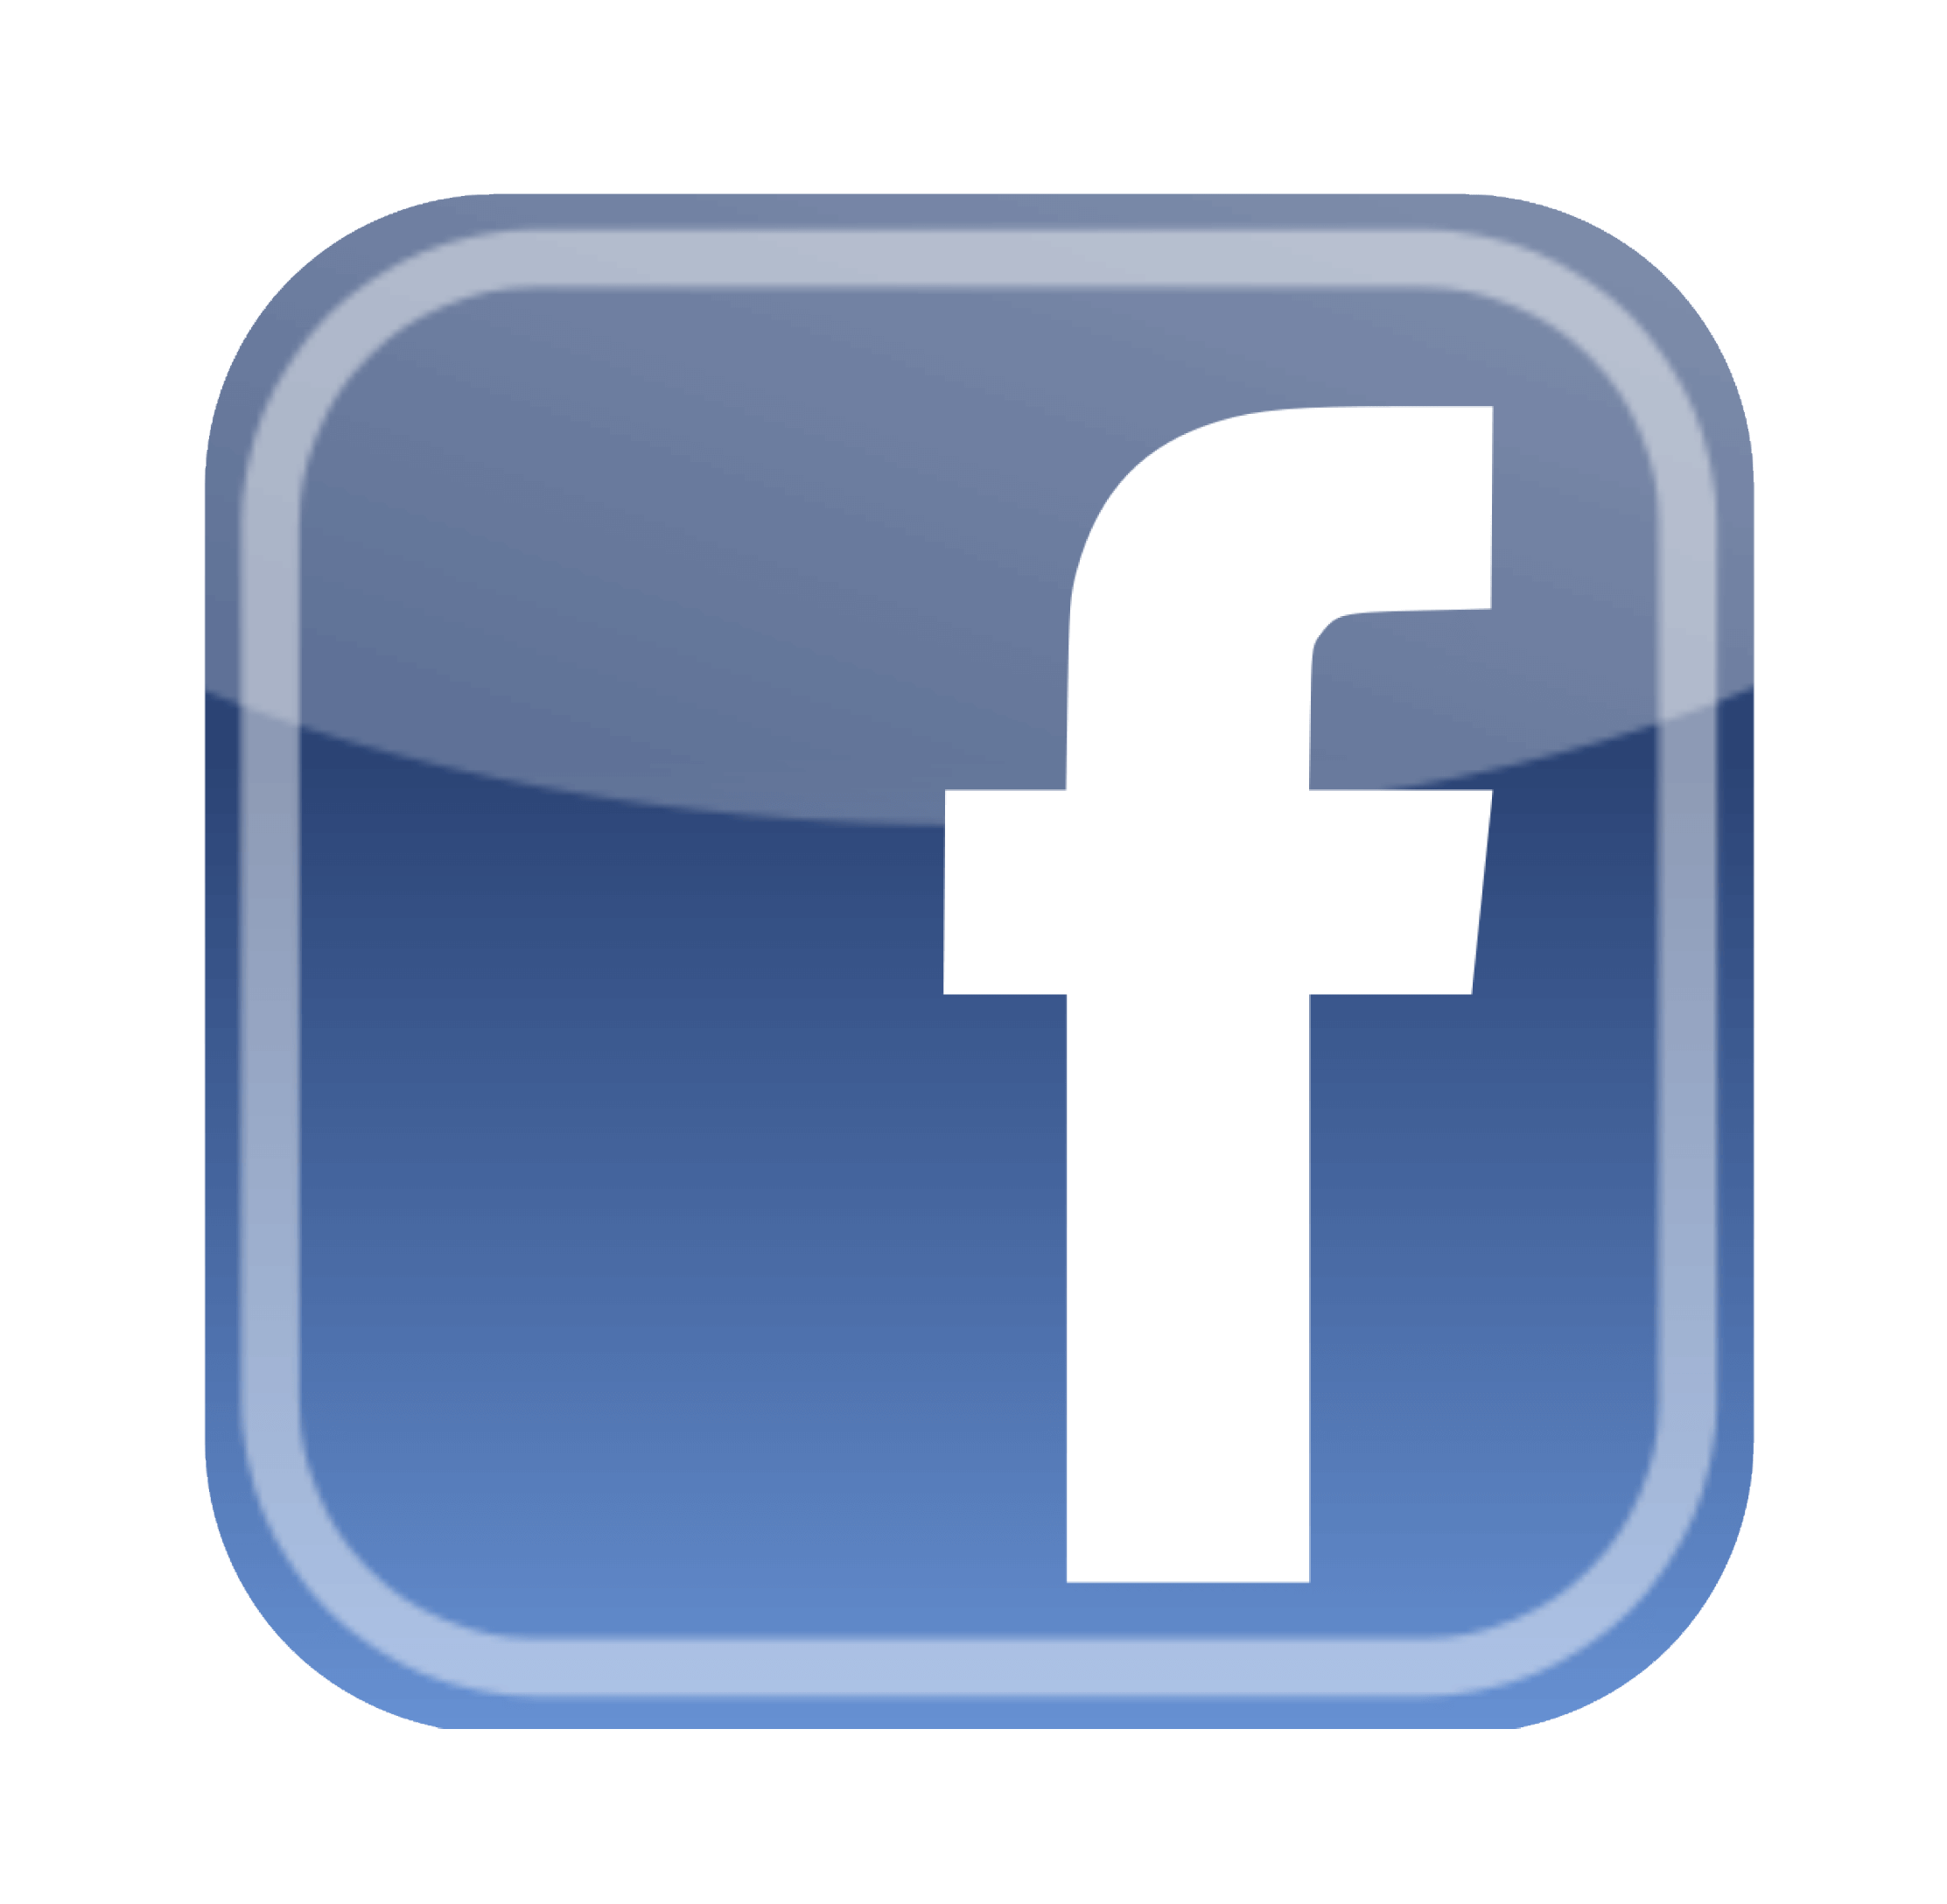 logo facebook lien decogarage